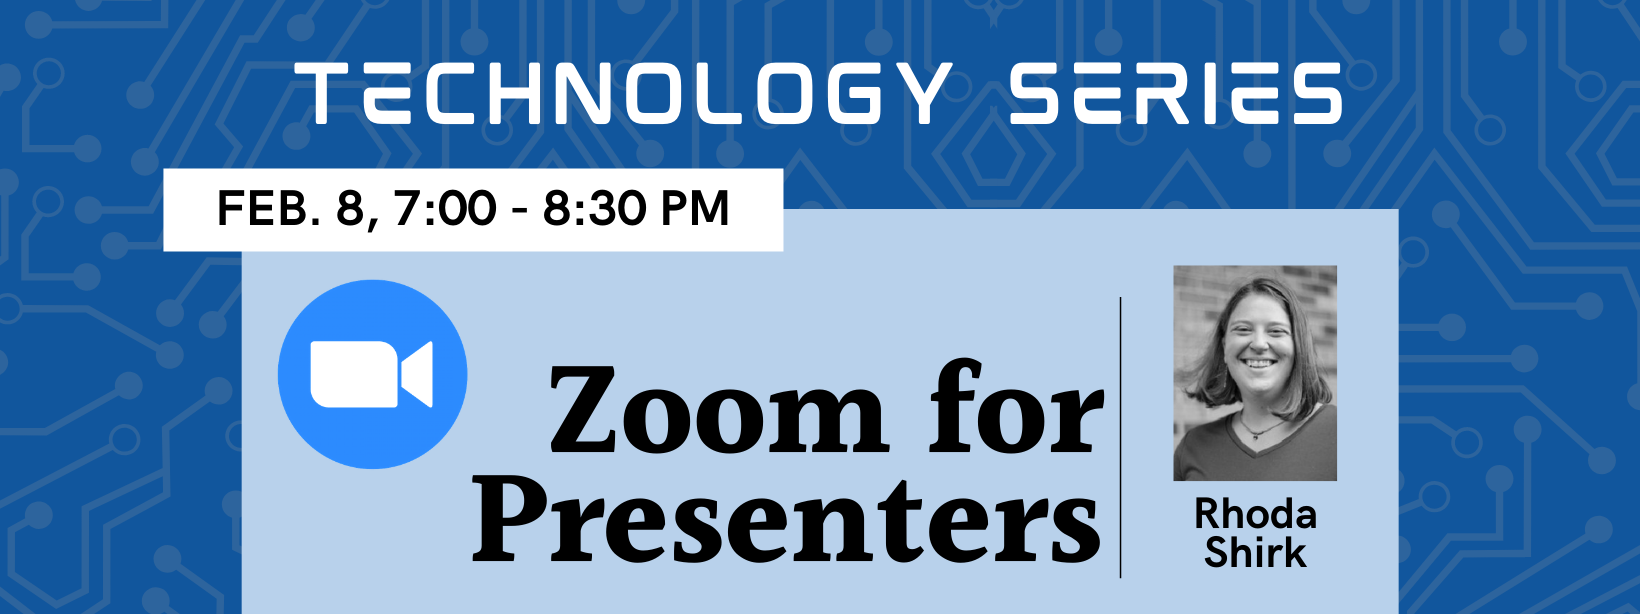 Zoom for Presenters